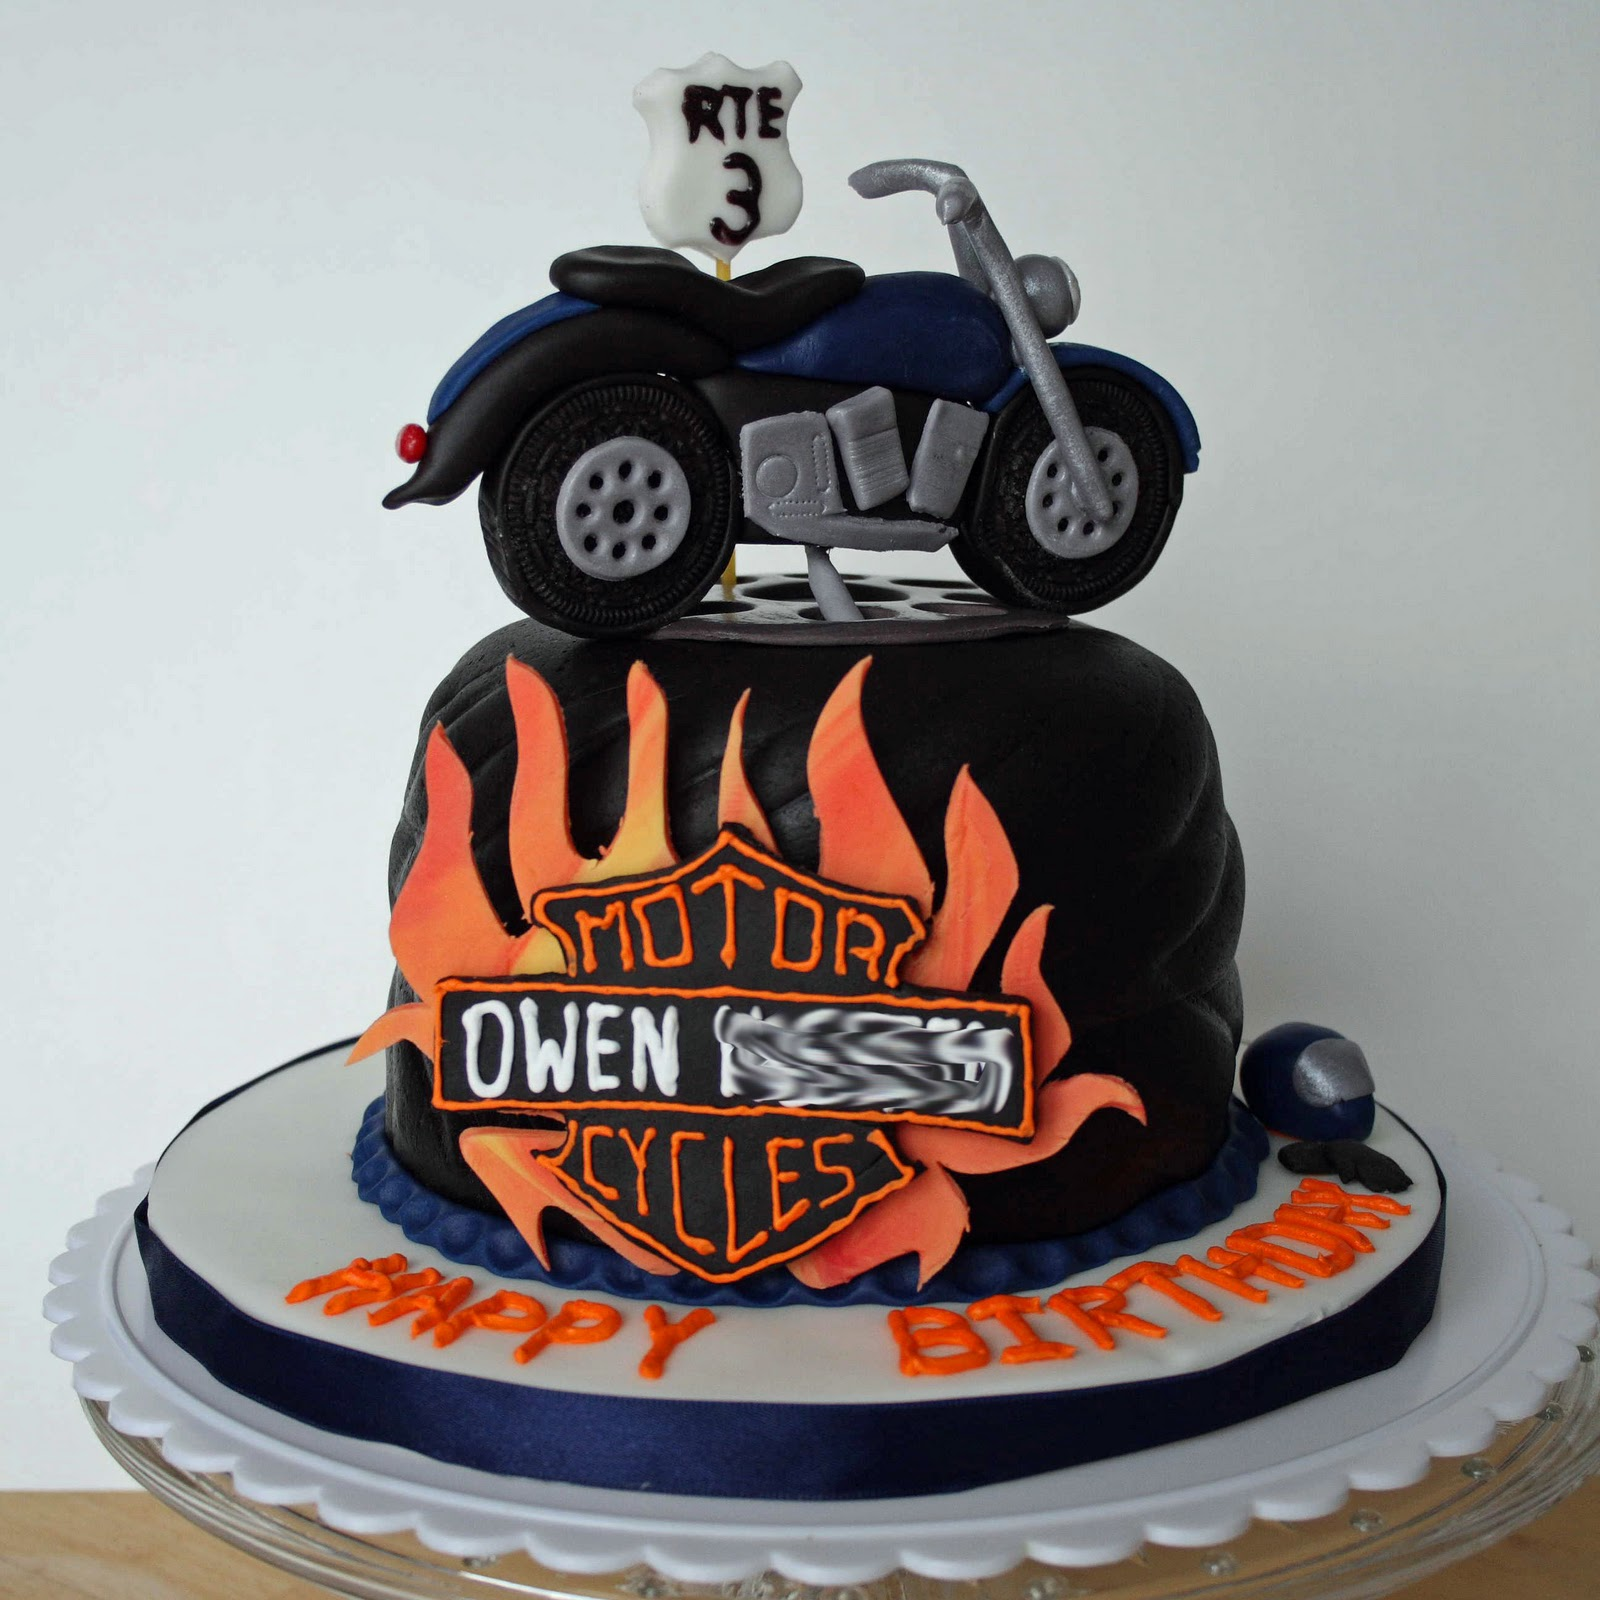 All Kinds Of Sugar Motorcycle Birthday Cake